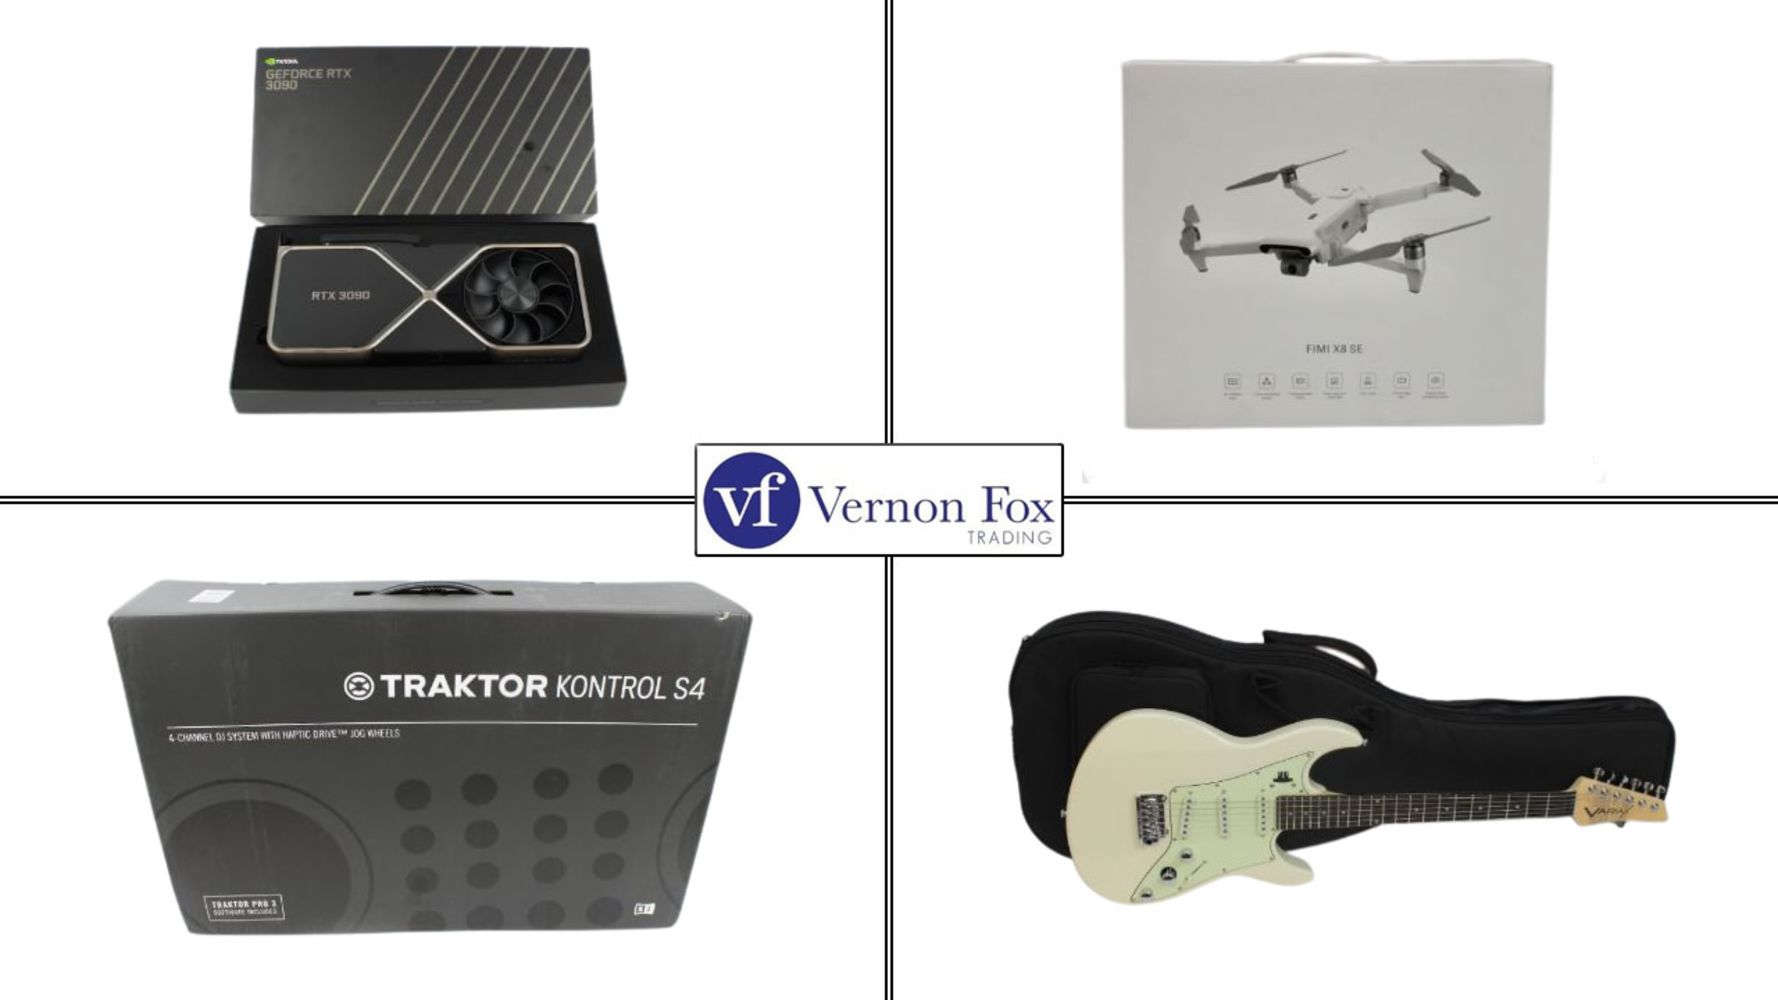 TIMED ONLINE AUCTION: Large range of IT, Technology, Music and Audio items. FREE UK DELIVERY!